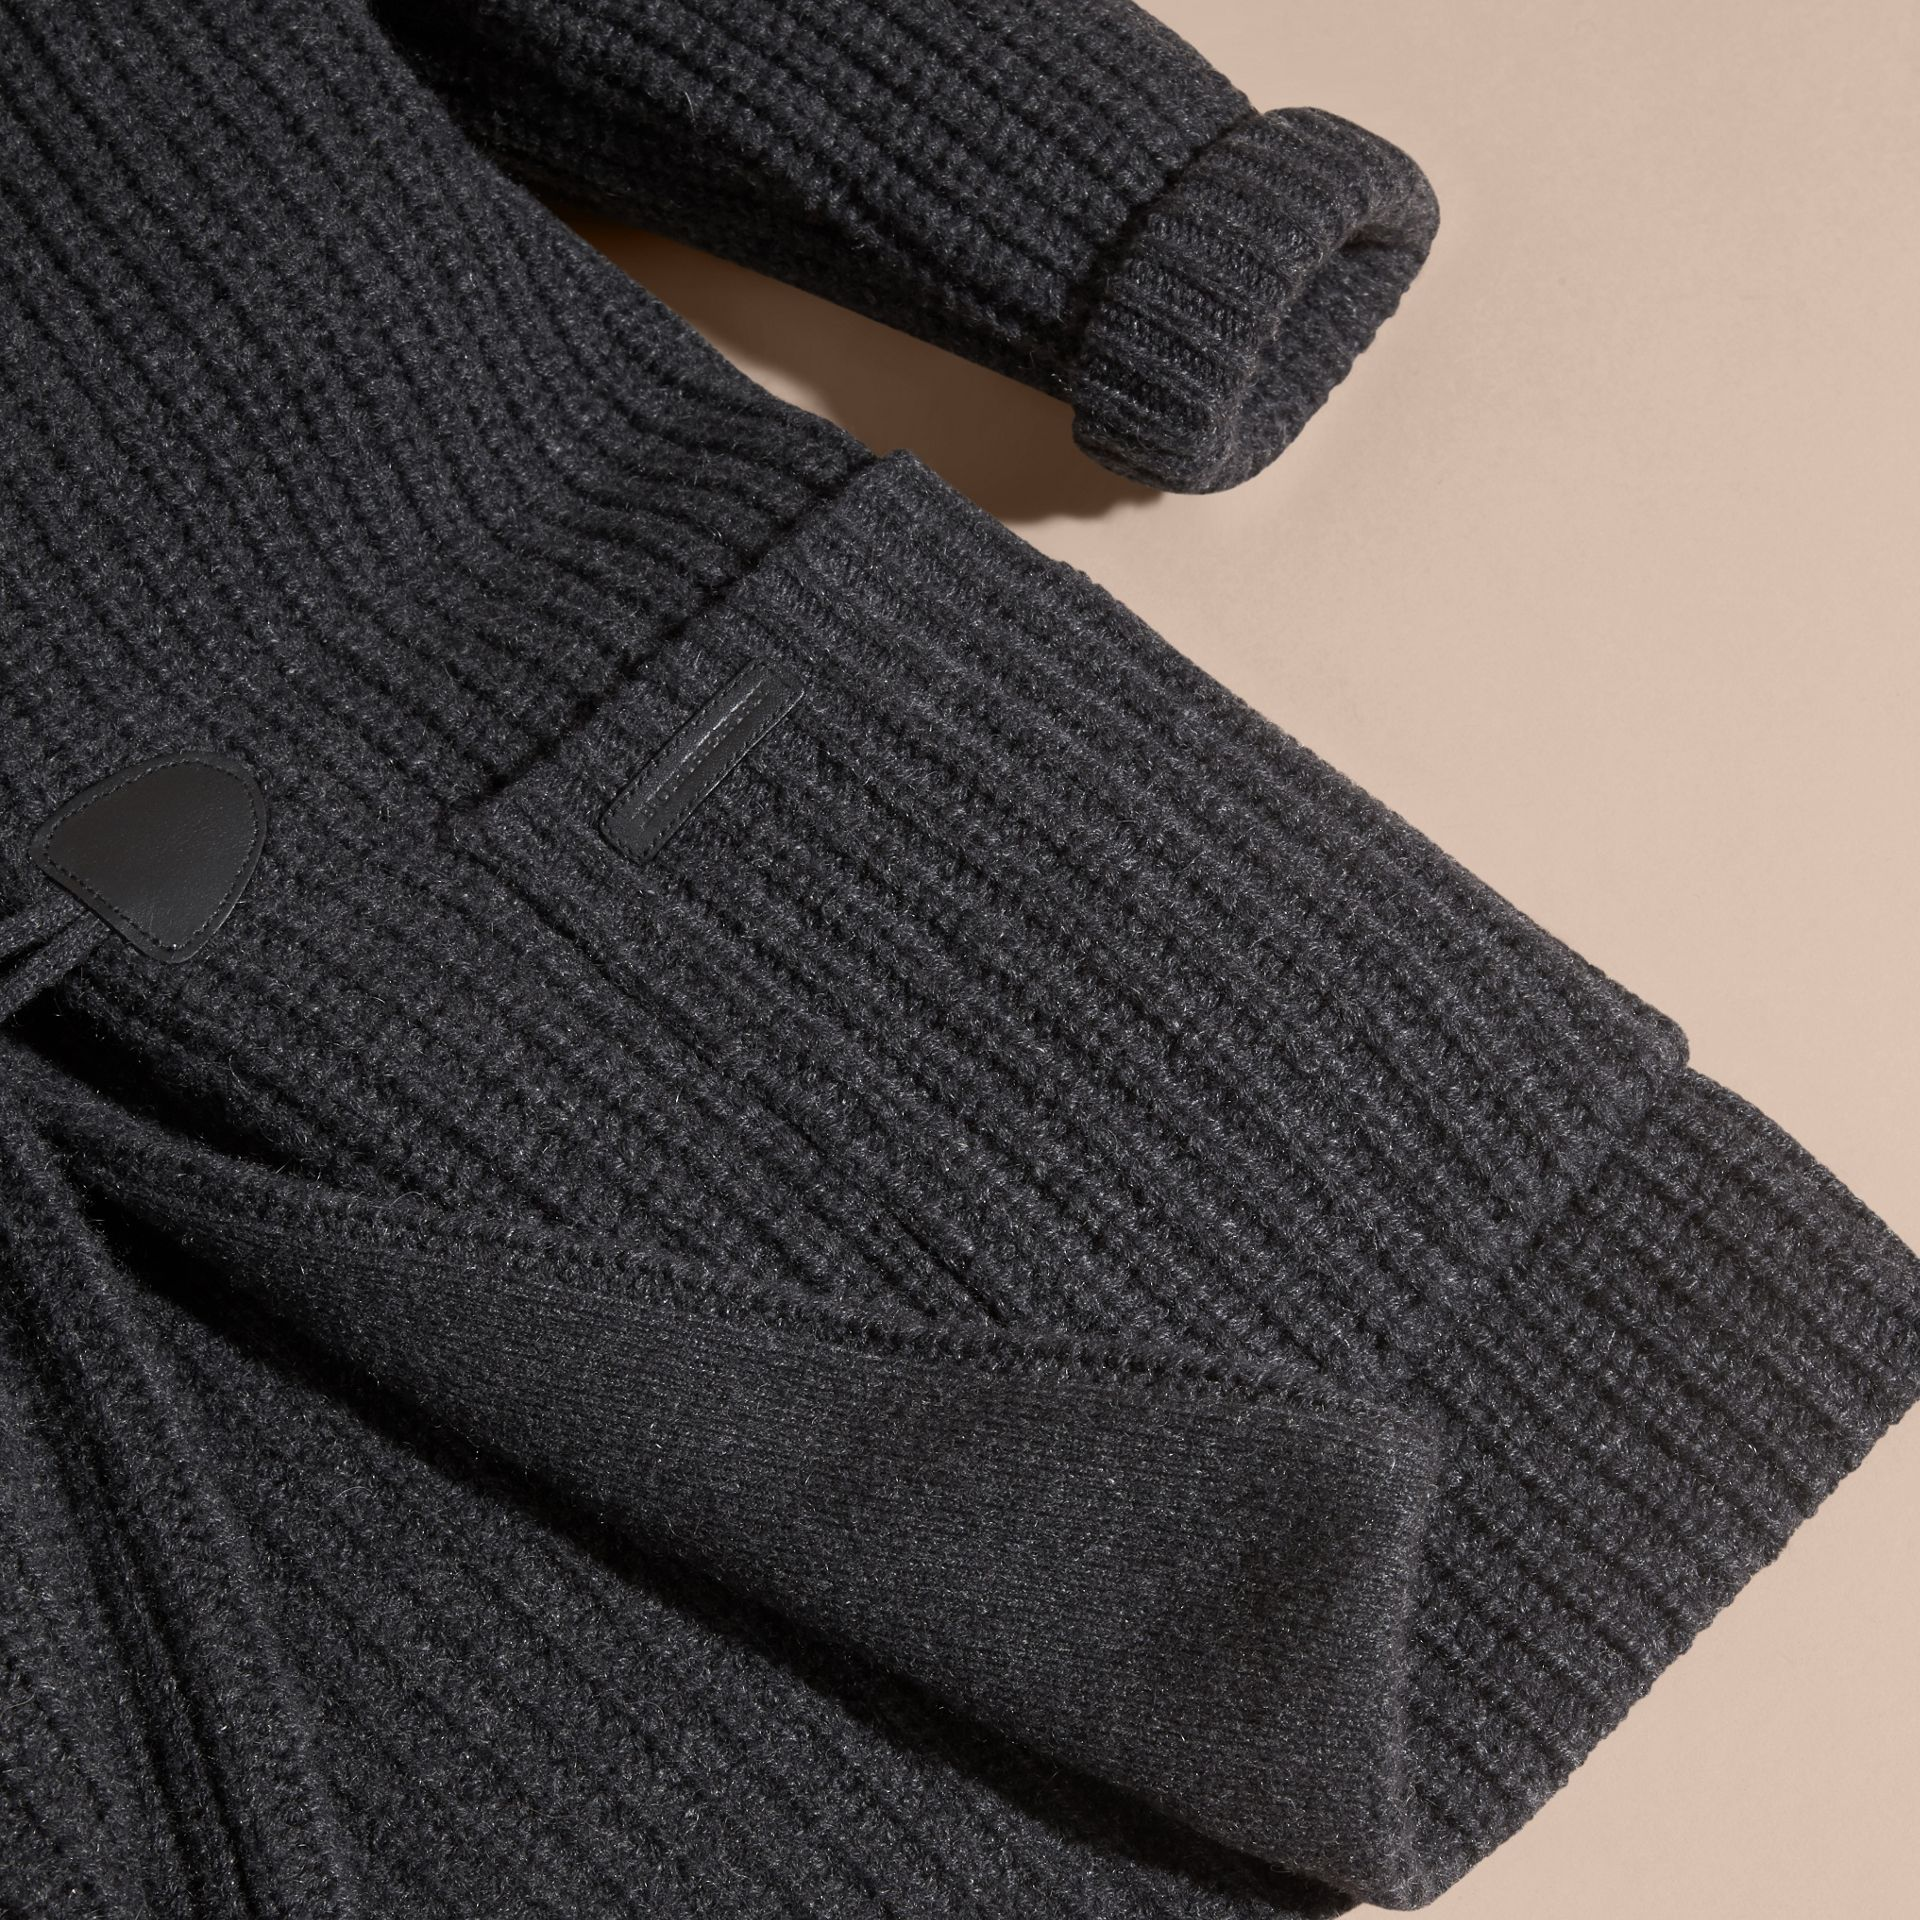 Charcoal melange Toggle Closure Wool Cashmere Cardigan - gallery image 6